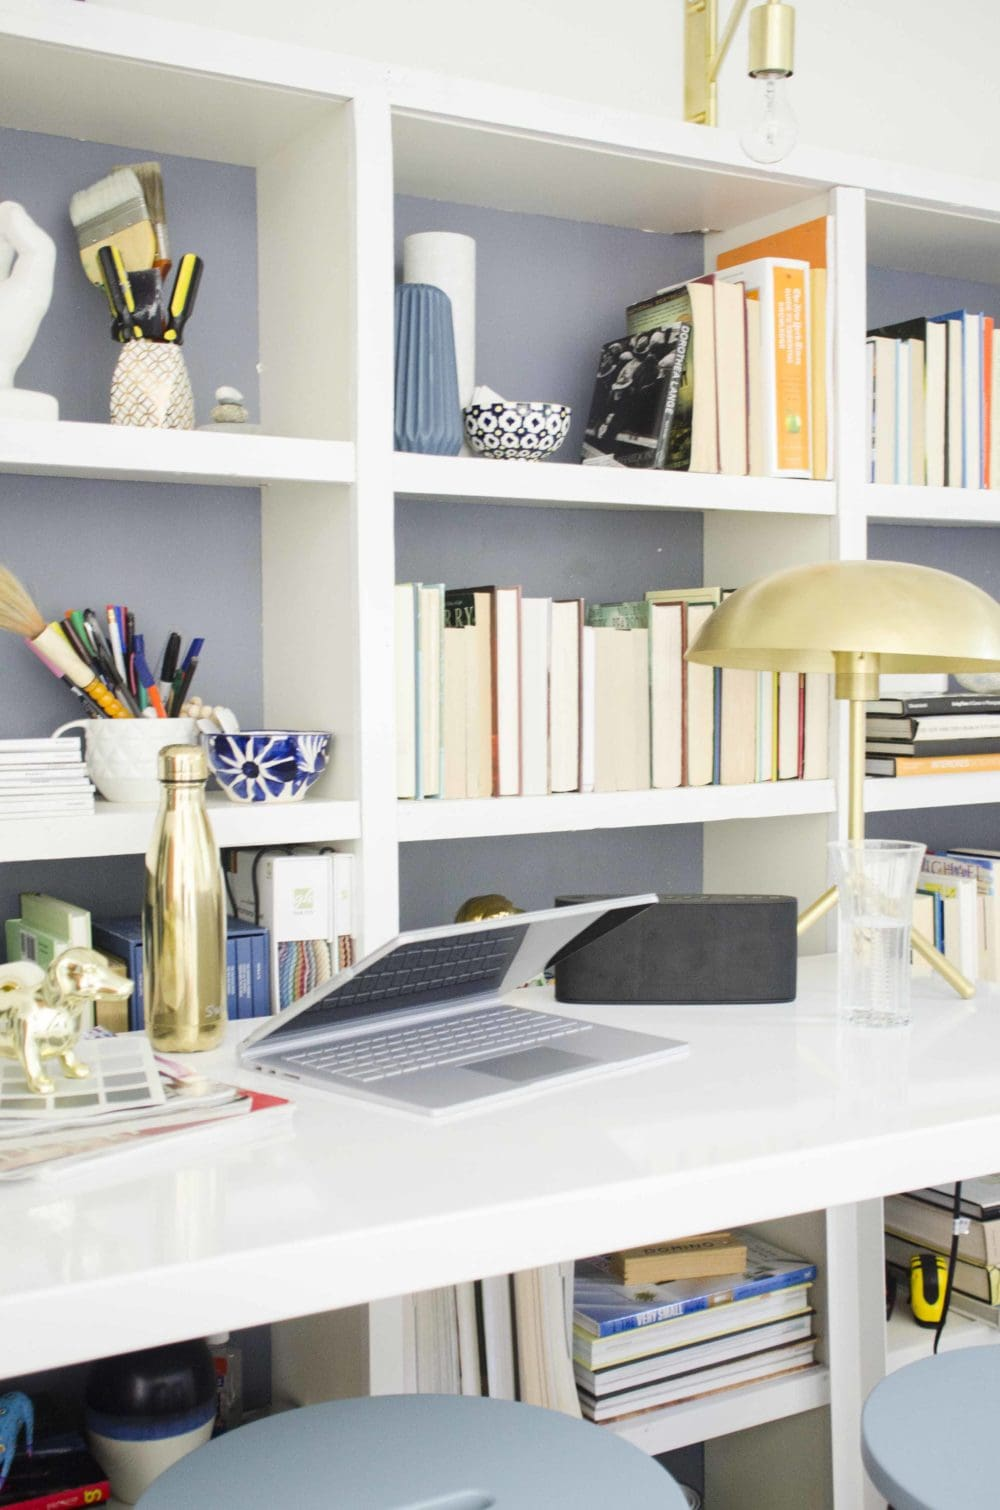 Home office standing desk Adjustable Height Modern Standing Desk Home Office With Bookshelves On thouswellblog Thou Swell Designing Modern Standing Desk Office Thou Swell